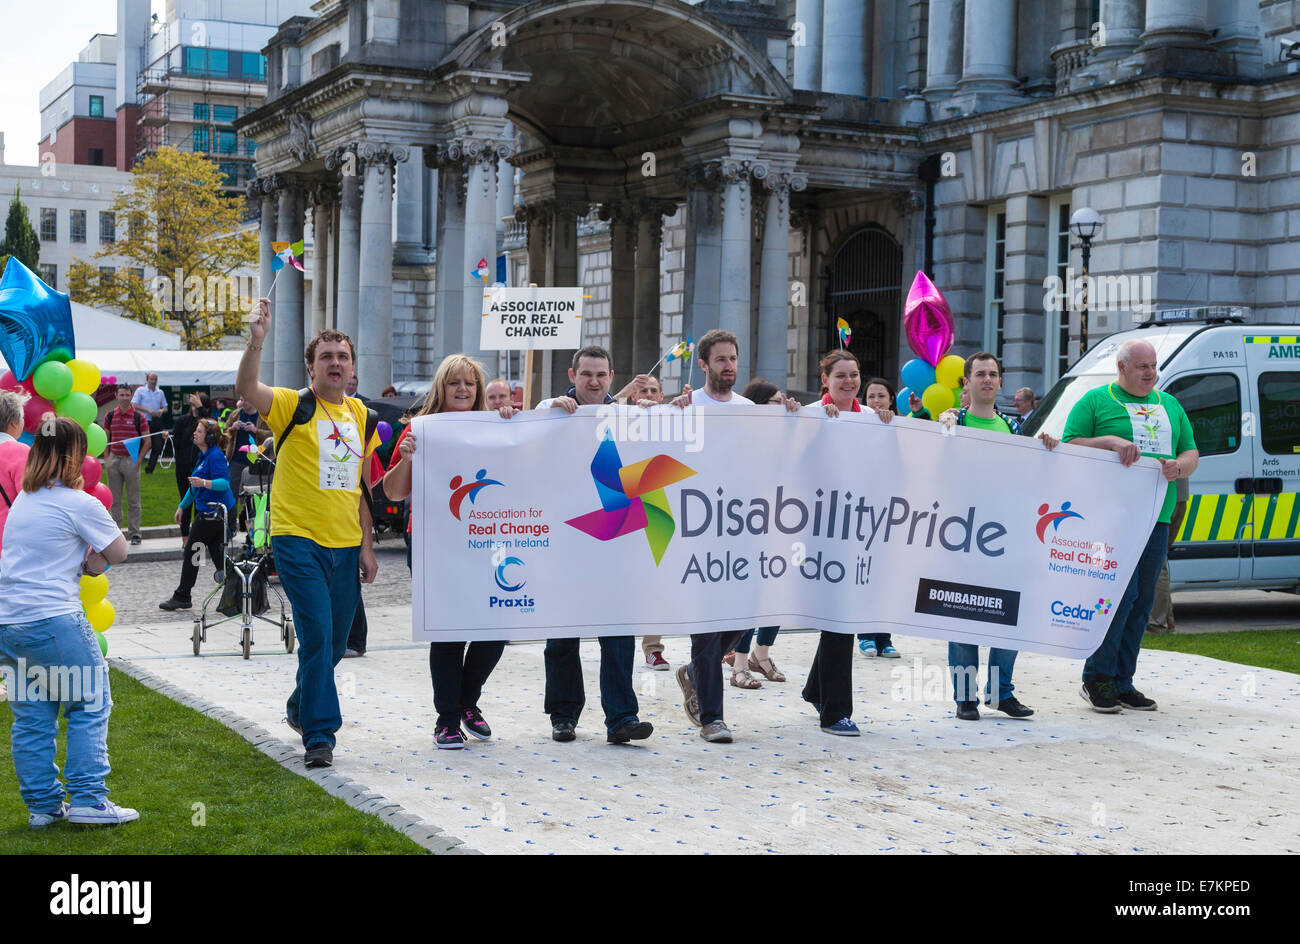 Belfast, Northern Ireland, UK. 20 September 2014. Disability Pride at the City Hall. Credit:  J Orr/Alamy Live News - Stock Image